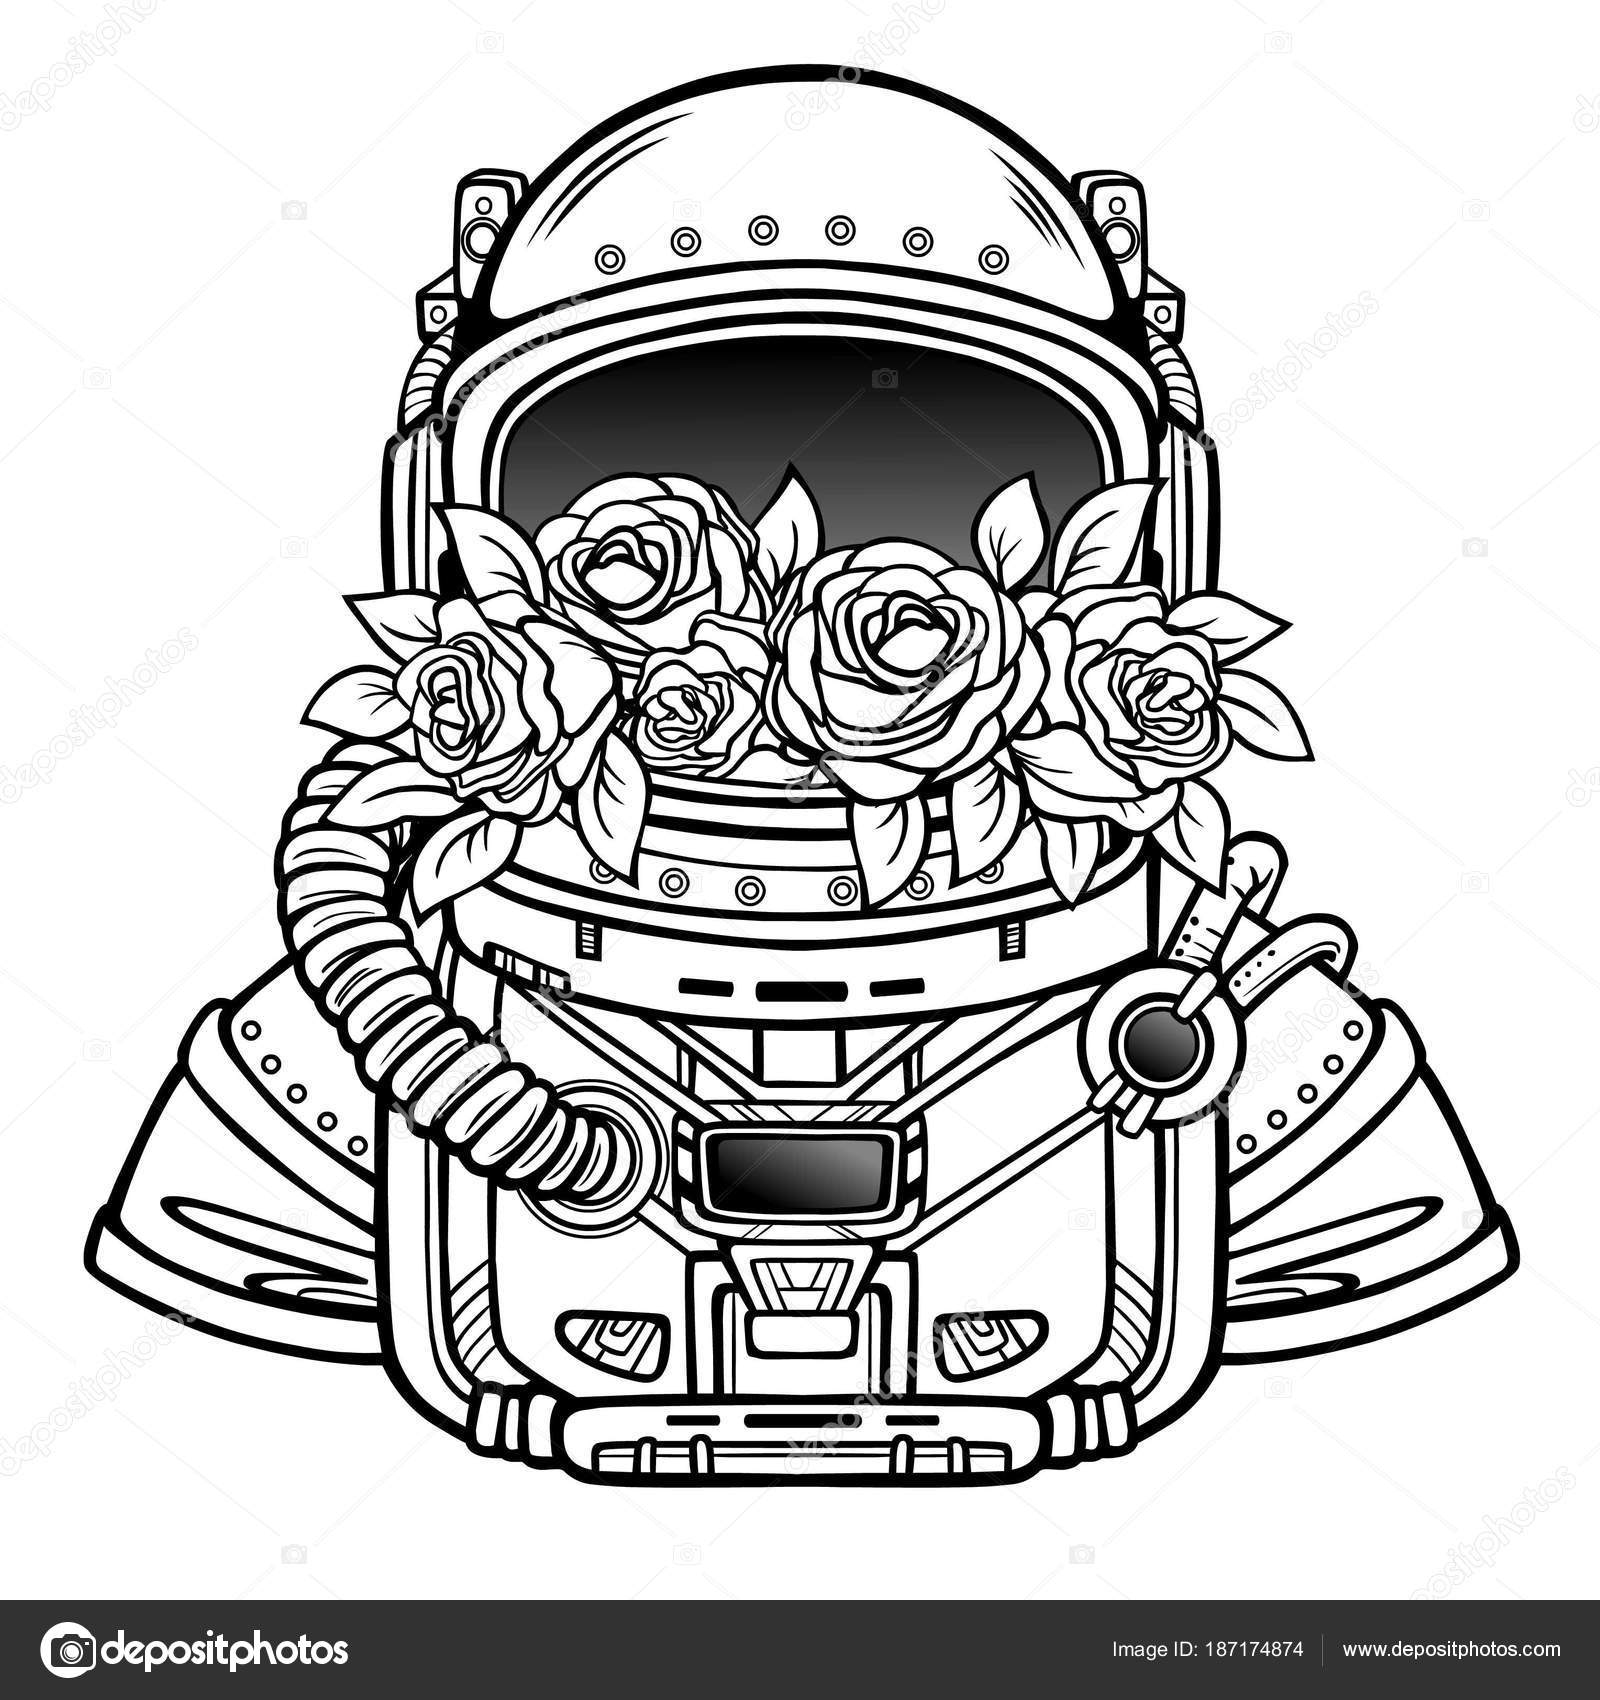 space helmet astronaut filled flowers roses linear monochrome